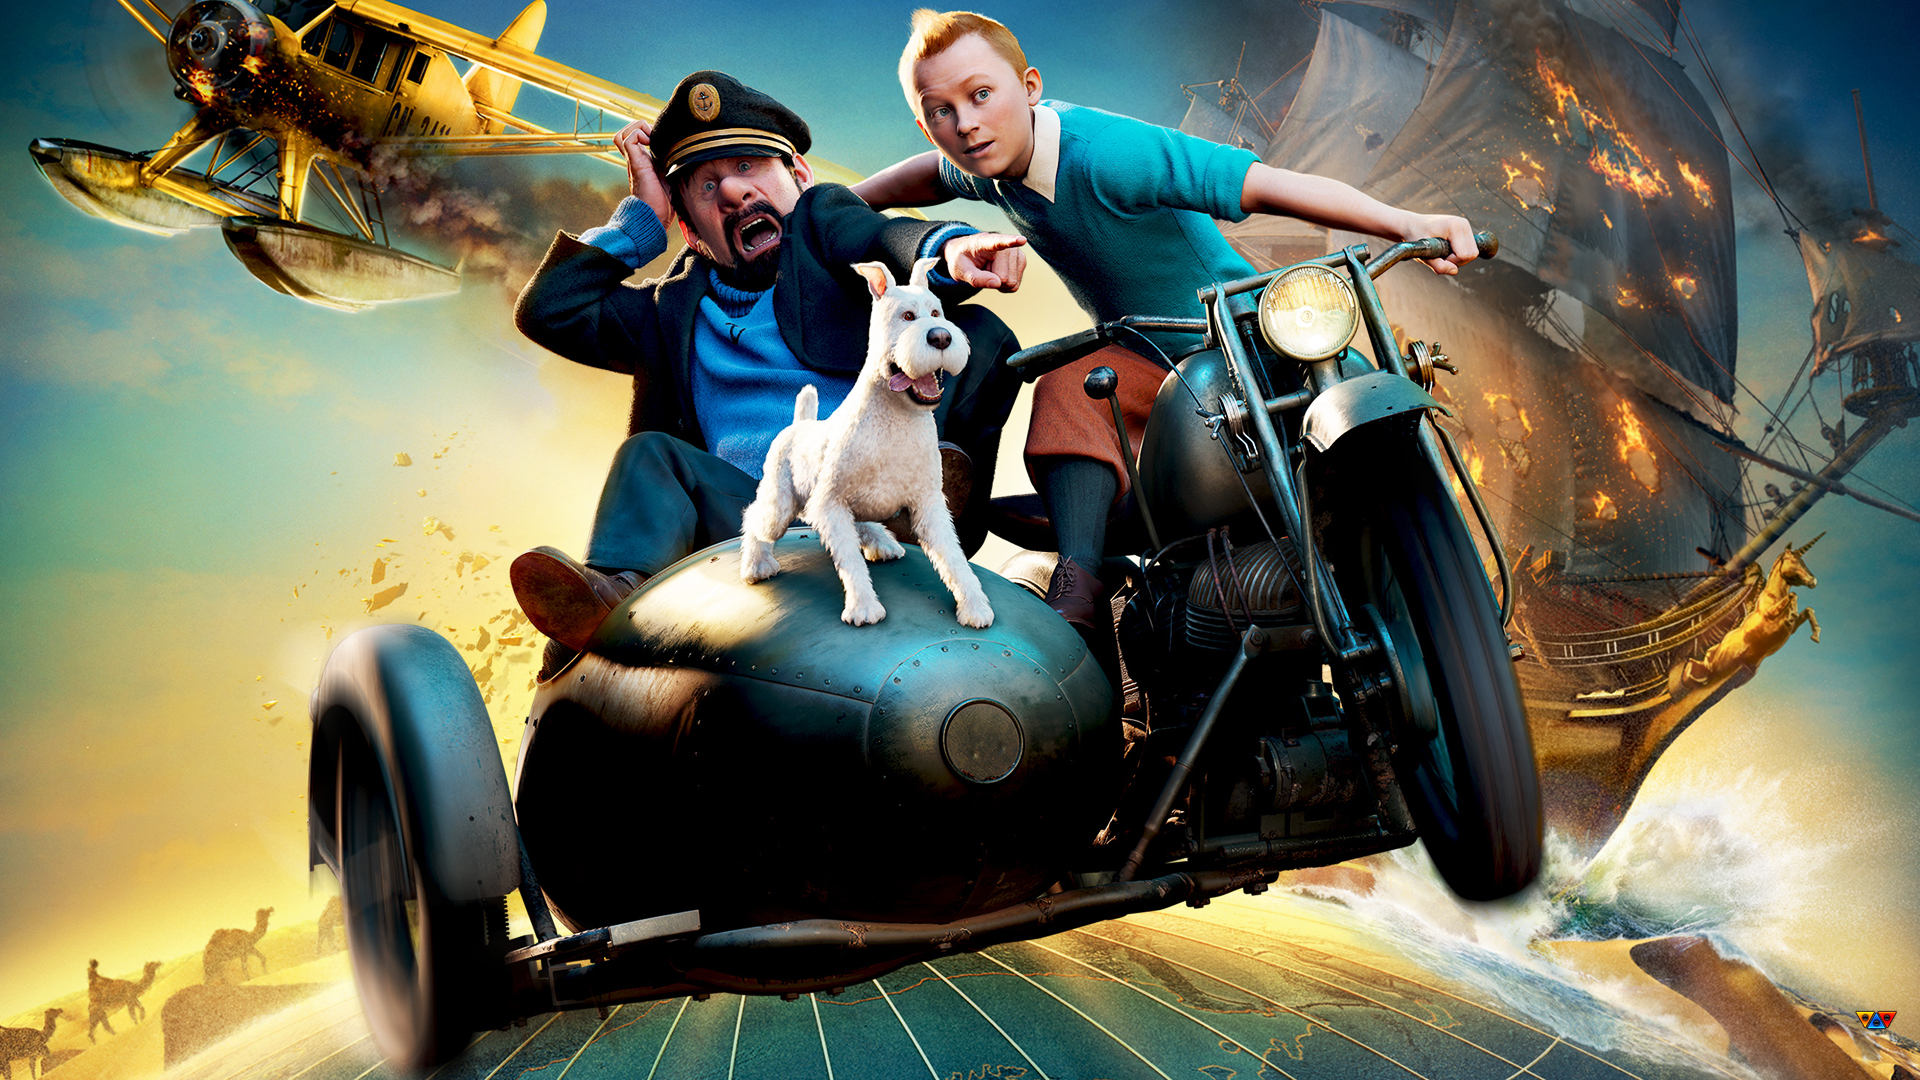 tintin and snowy wallpaper - photo #34